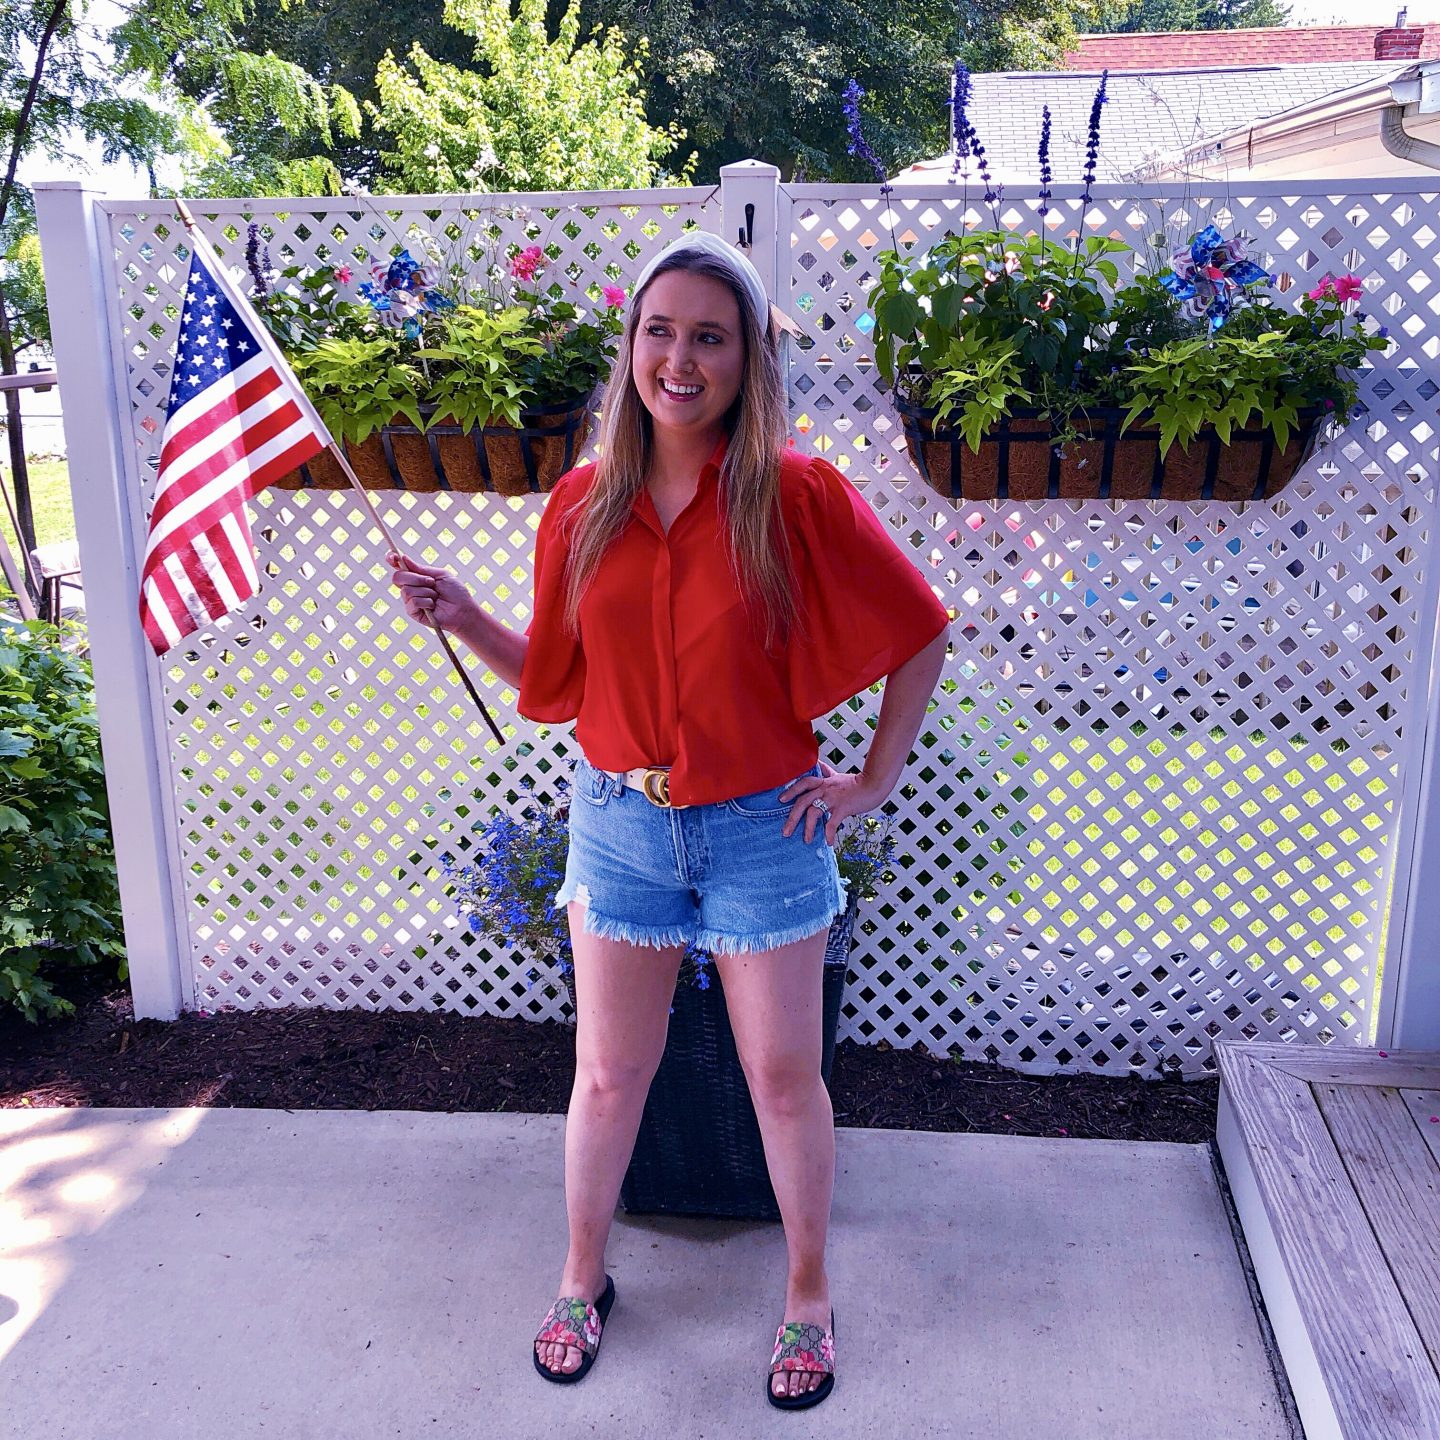 Simple Summer Getaway To Manitou Beach Michigan!, 4th of july outfit, white gucci belt, gucci slides, red blouse, american outfit, american clothes, patriotic outfit